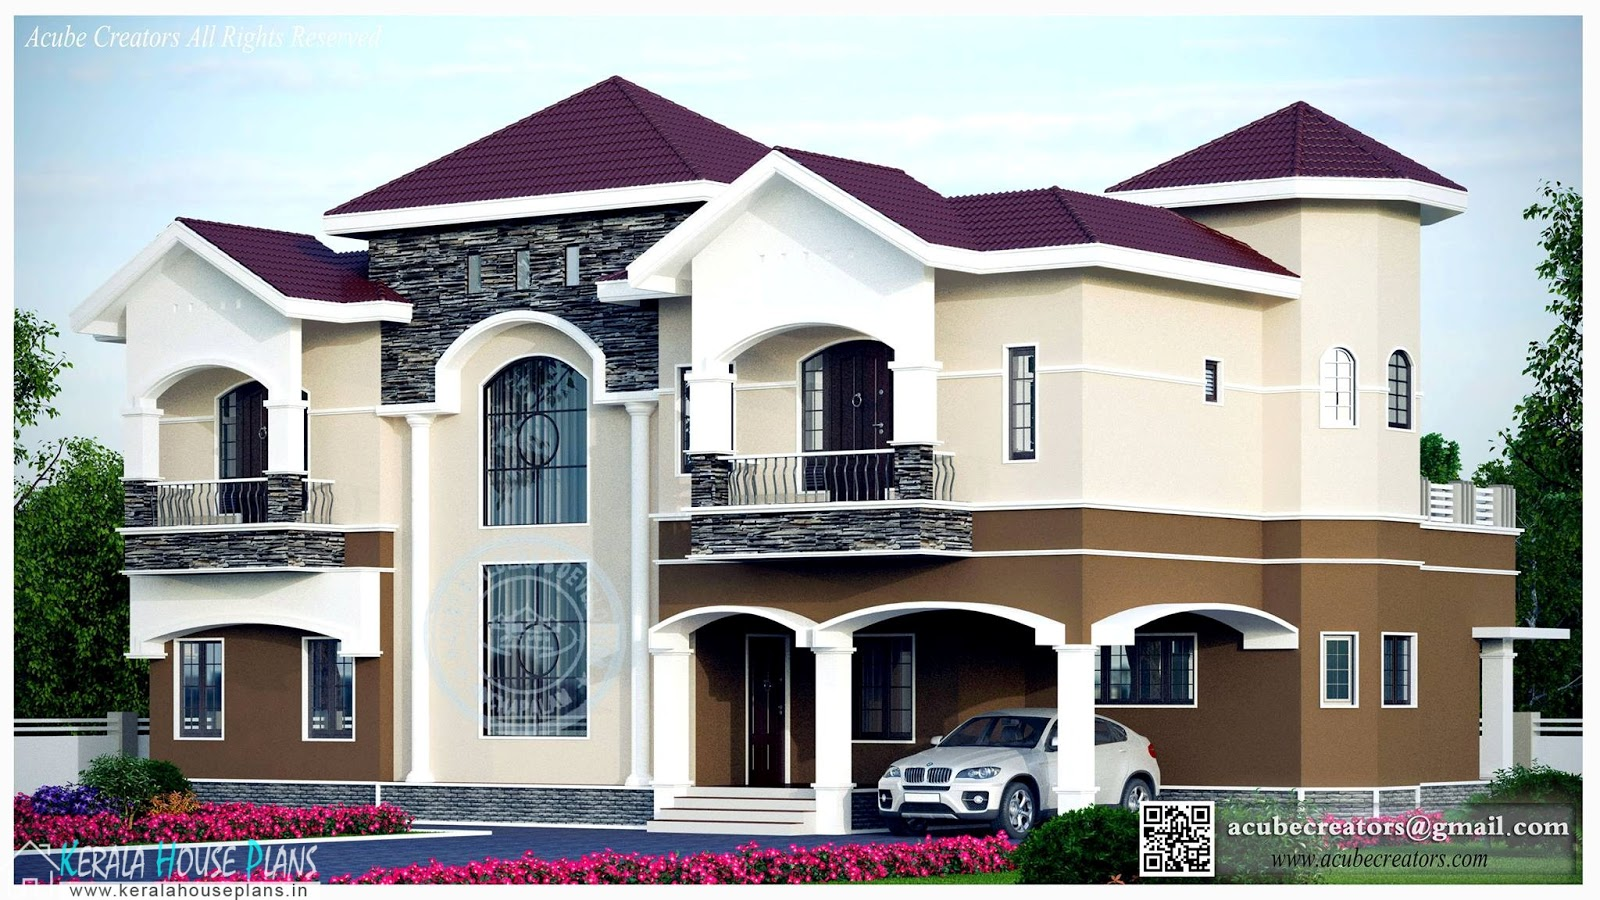 Modern Style Kerala Home Design 3518 sq.ft.